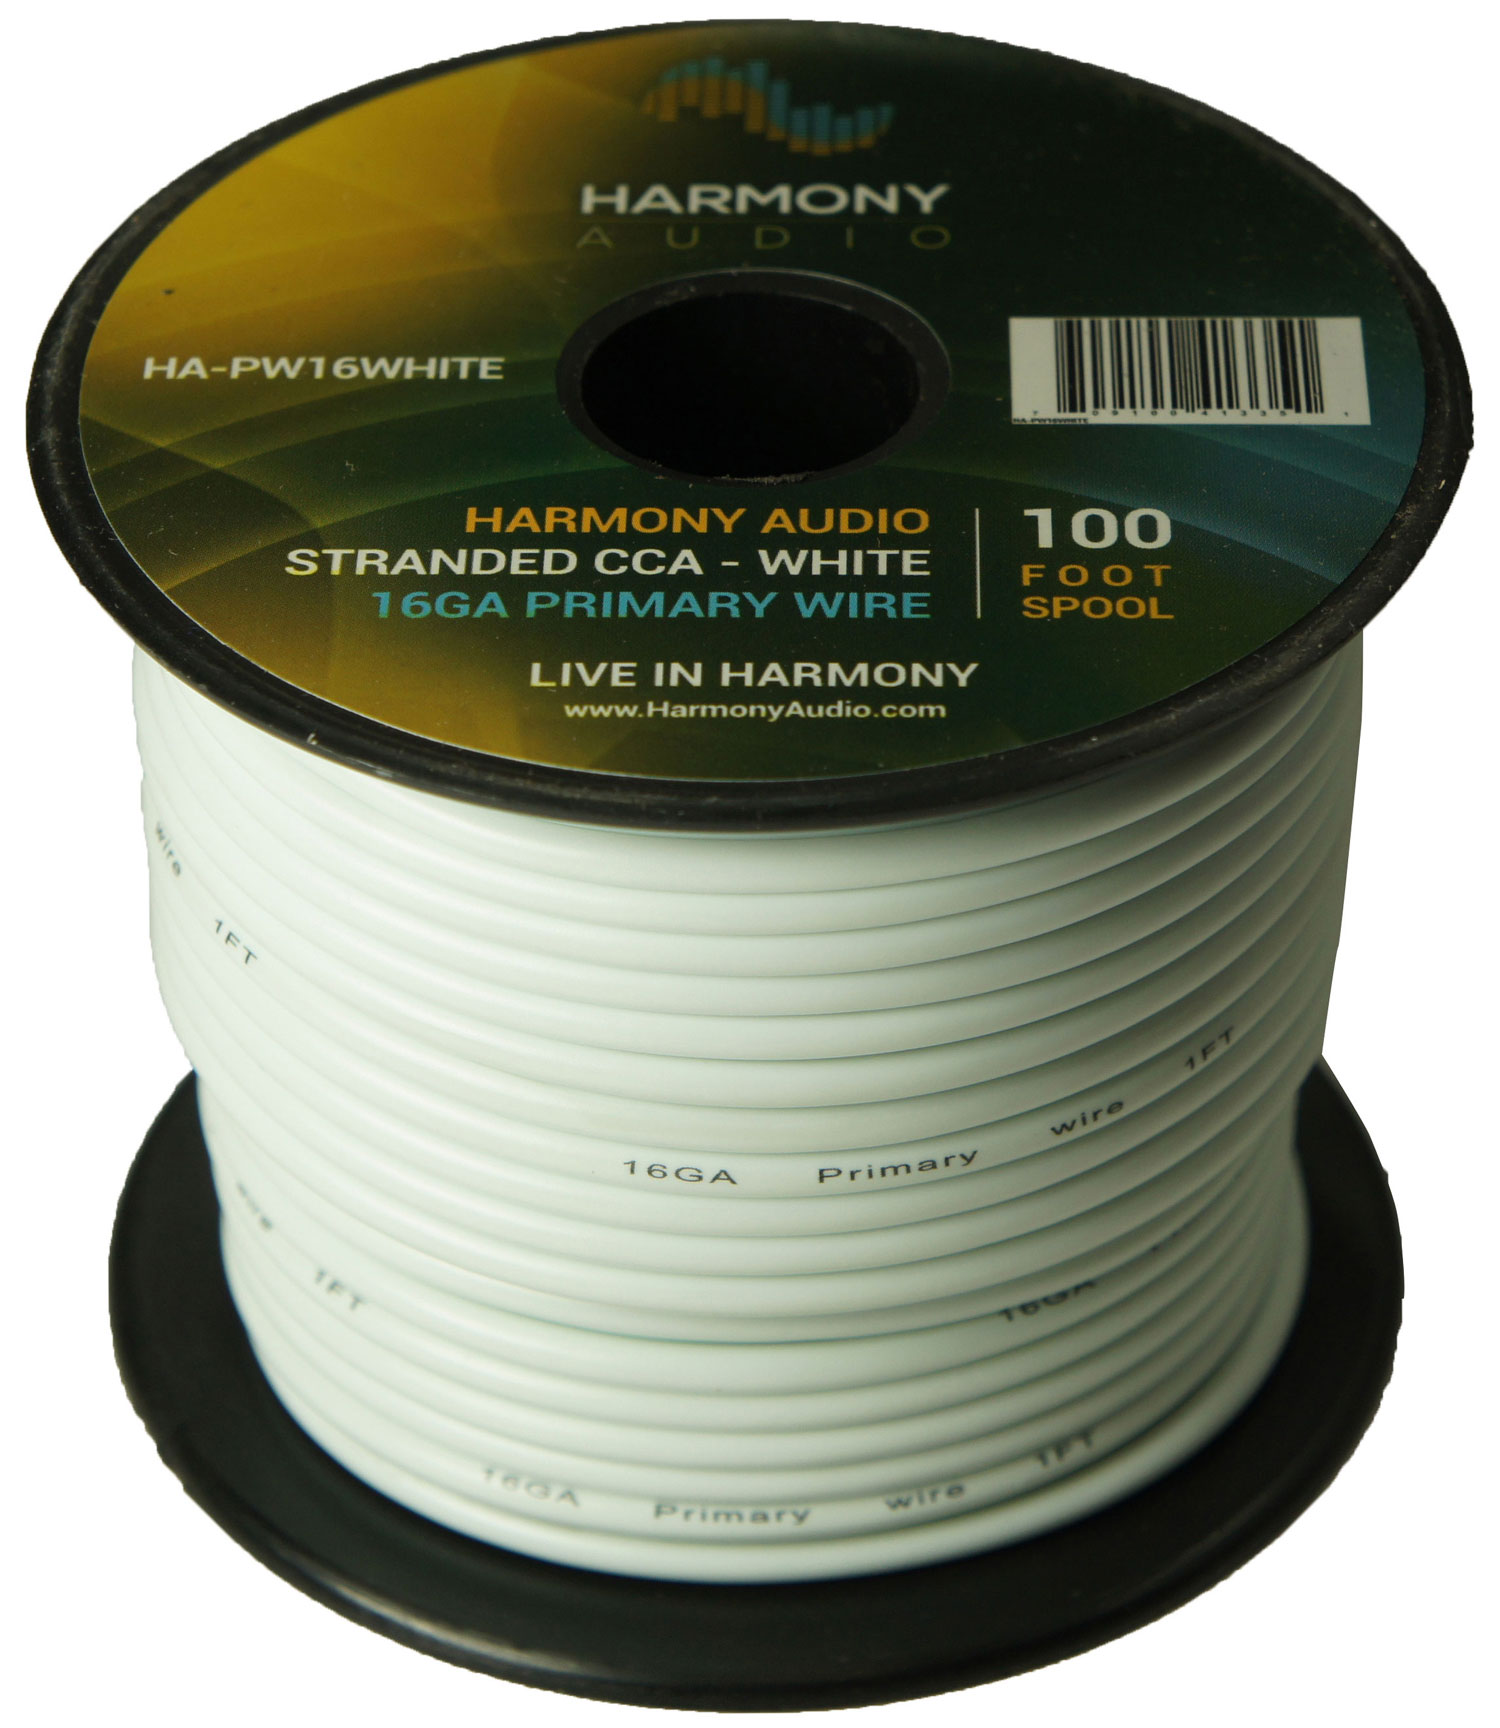 hight resolution of harmony audio ha pw16white primary single conductor 16 gauge white power or ground wire roll 100 feet cable for car audio trailer model train remote